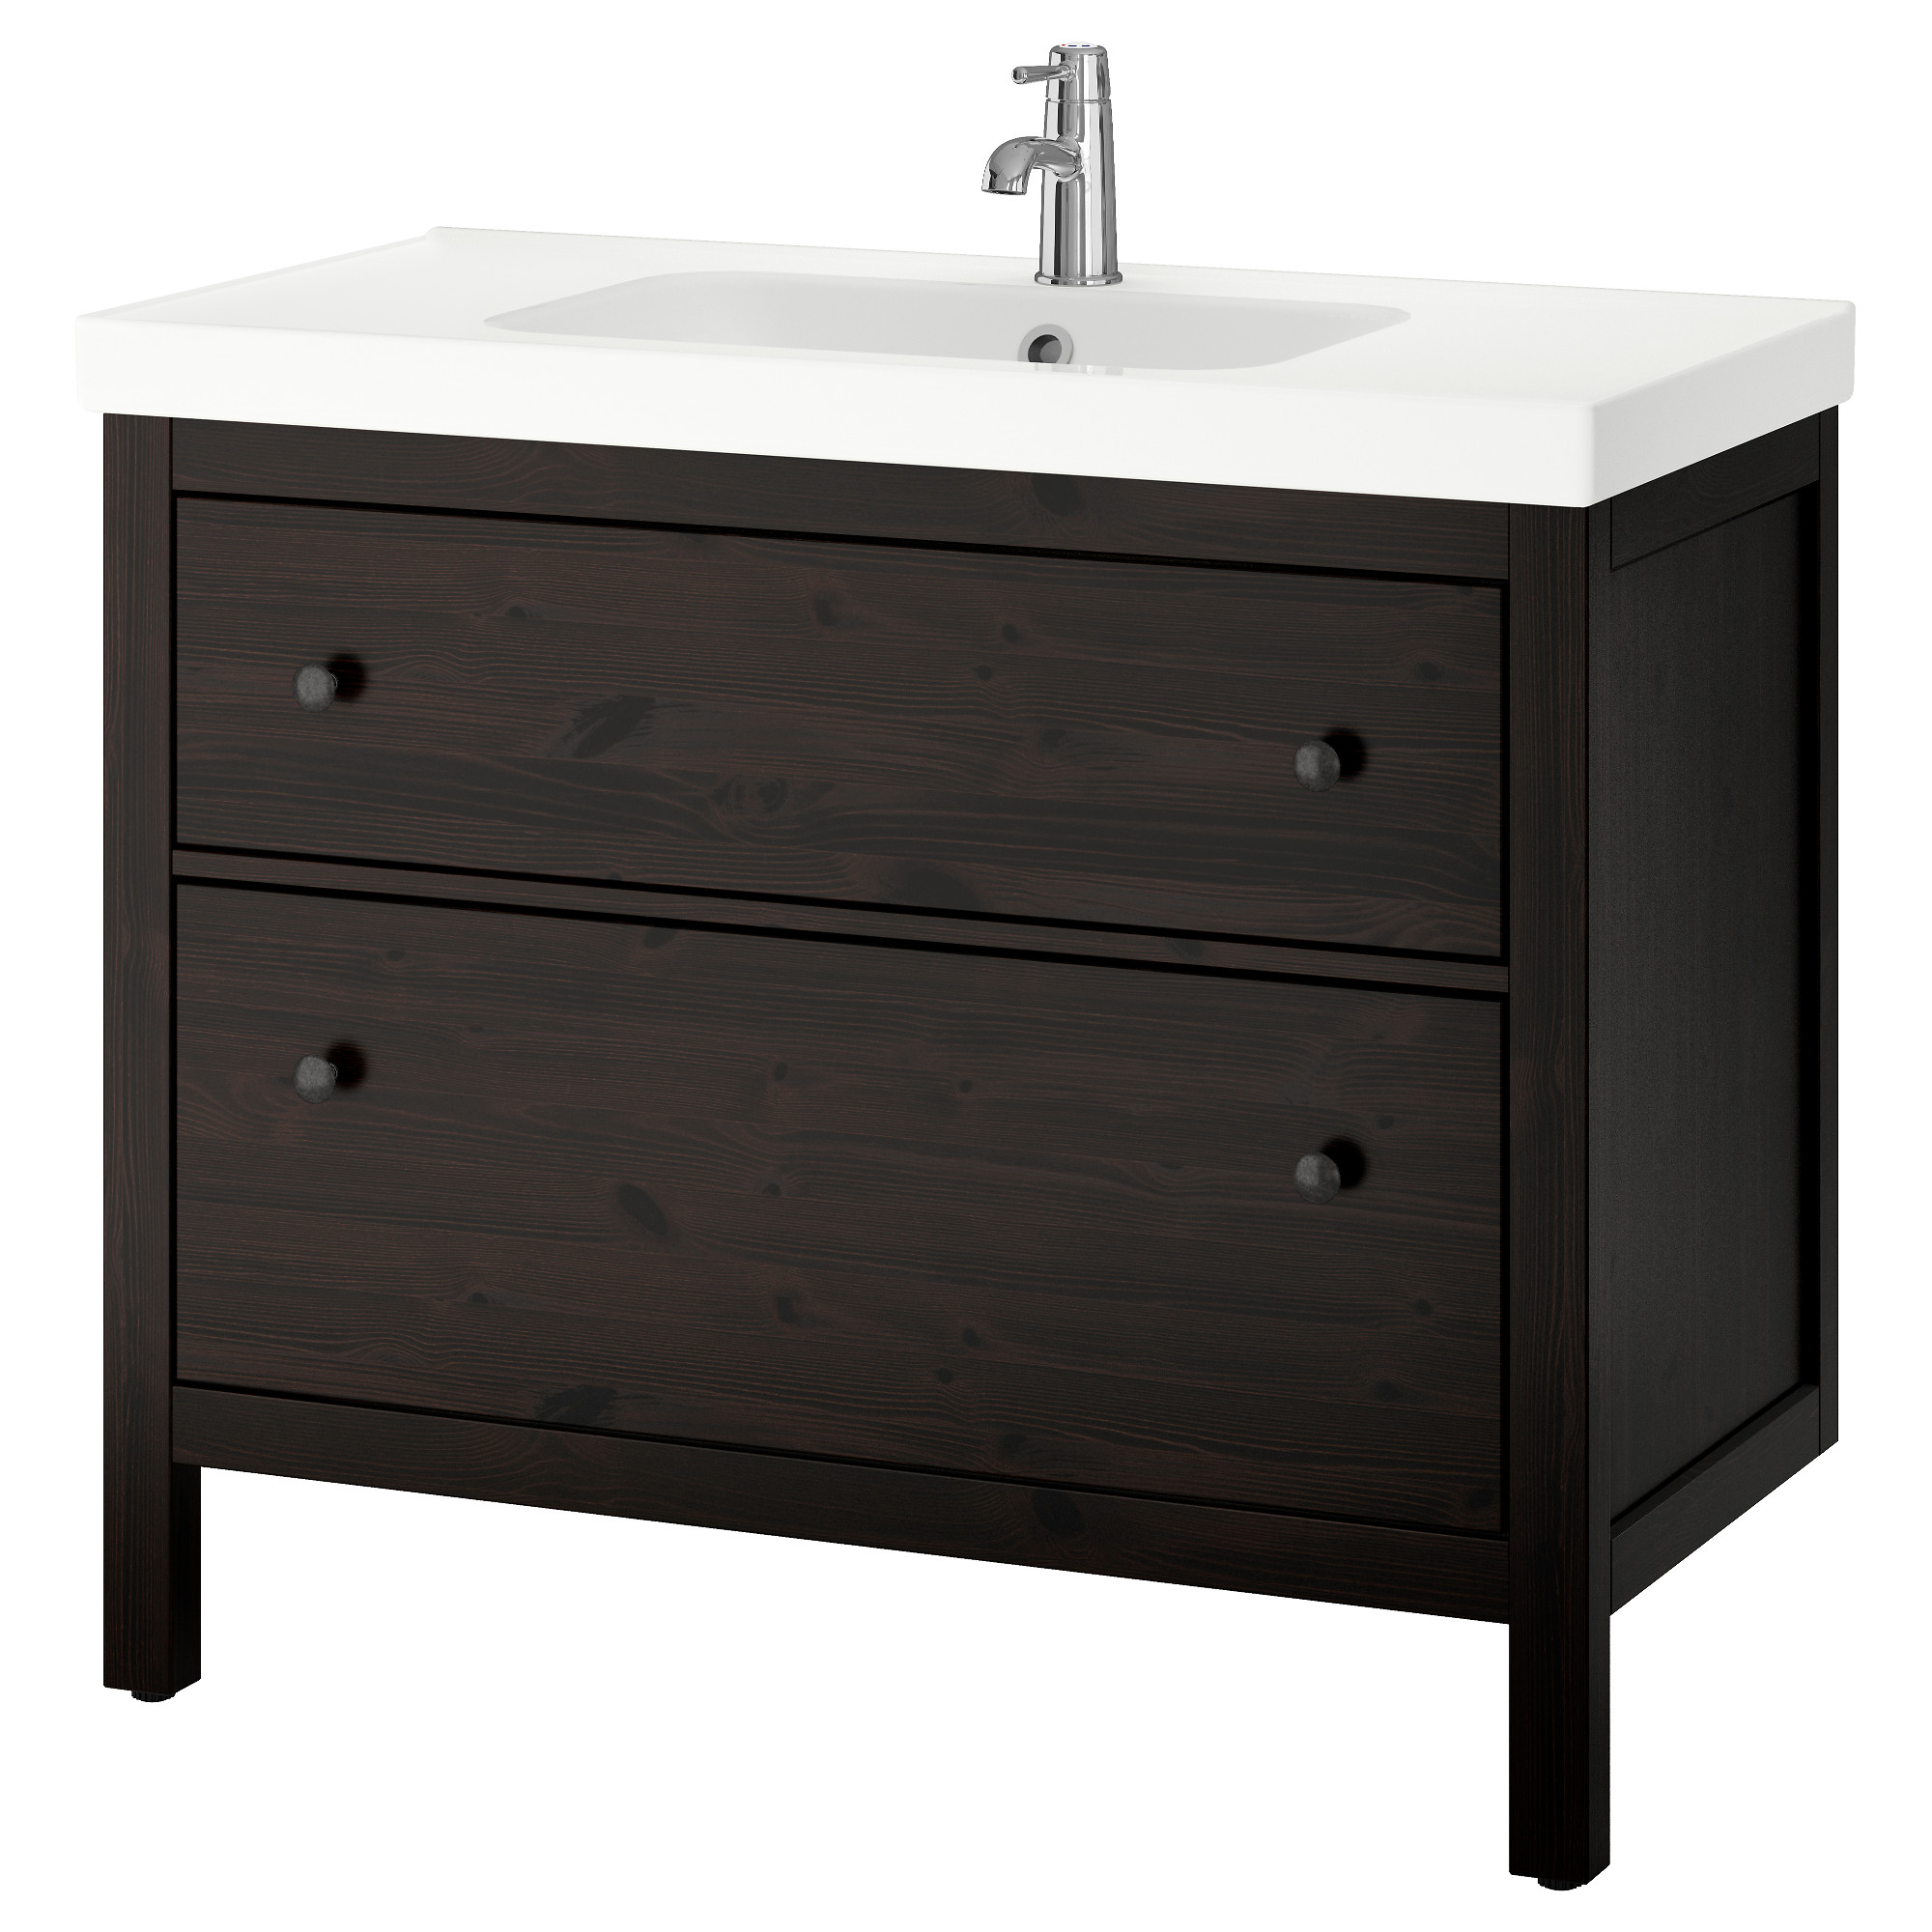 HEMNES / ODENSVIK Sink Cabinet With 2 Drawers, Black Brown Stain Width: 40 Amazing Pictures